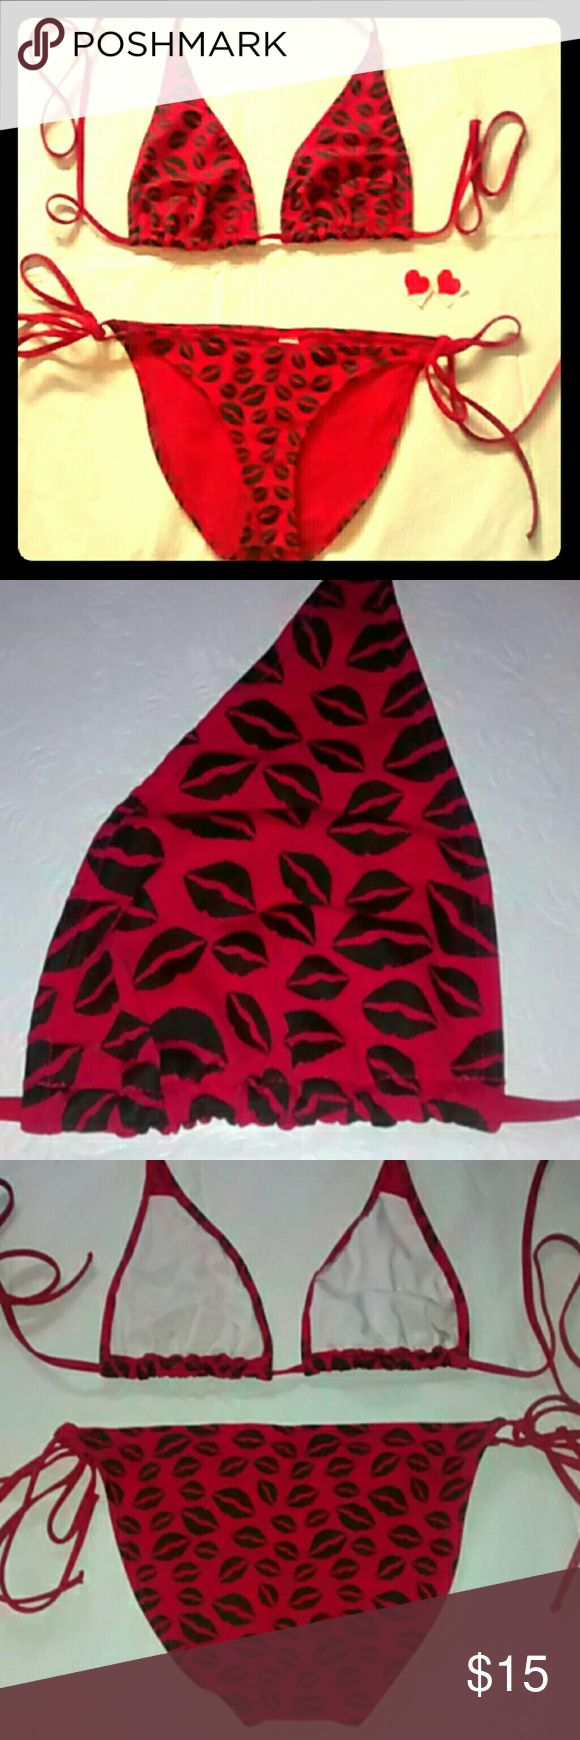 💋💋Hot Lips💋💋 String Bikini✨✨ Excellent, Like New Condition! Size tags have been cut out but it's a size large. Bottoms tie in sides. Top is a halter type- ties around neck, and in back and has pockets to add padding inserts if desired (not included) Red w black hot lips print thru-out. Swim Bikinis